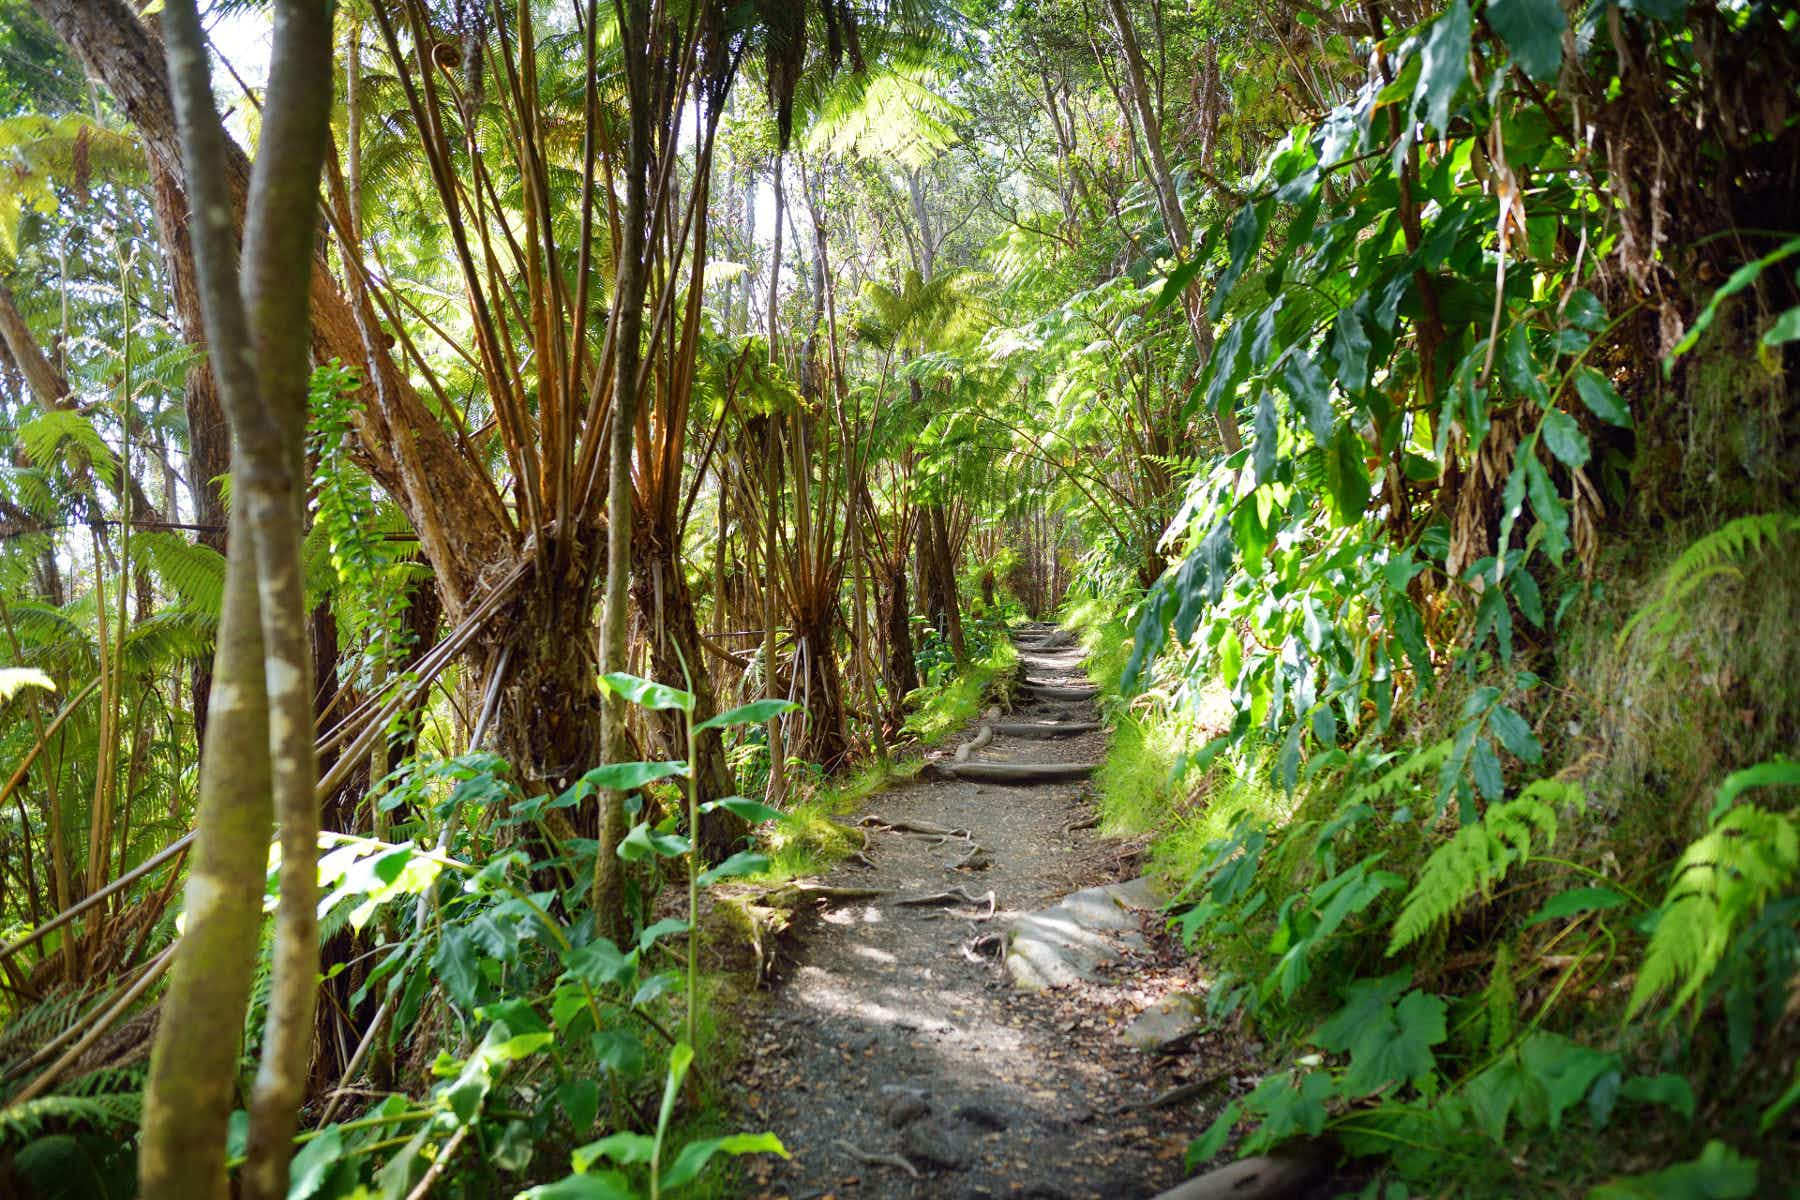 Hawaii has an ambitious plan to restore its forests